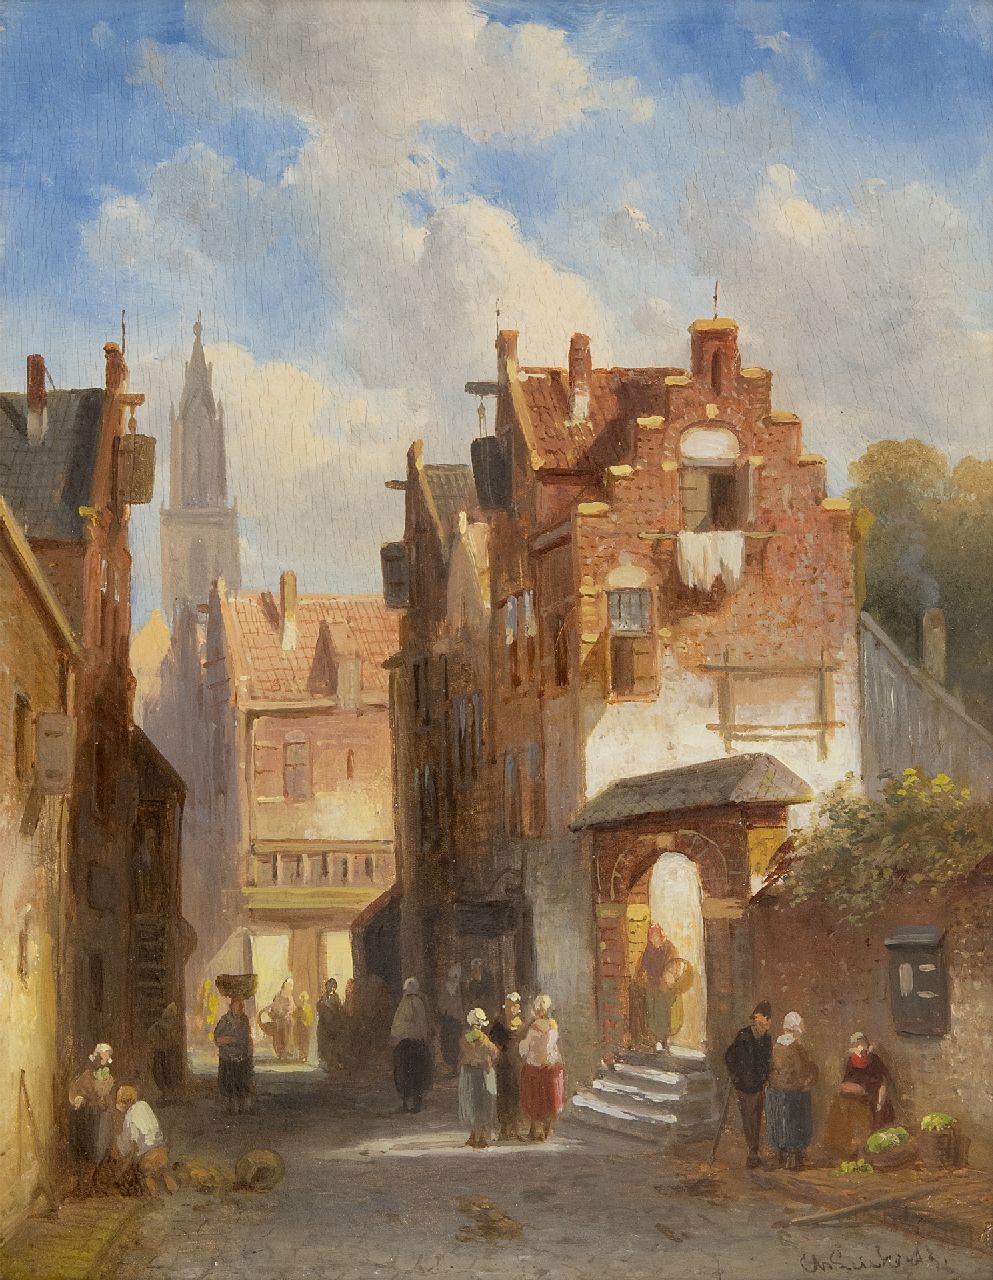 Leickert C.H.J.  | 'Charles' Henri Joseph Leickert | Paintings offered for sale | Market day in a Dutch town, oil on panel 27.0 x 21.2 cm, signed l.r.